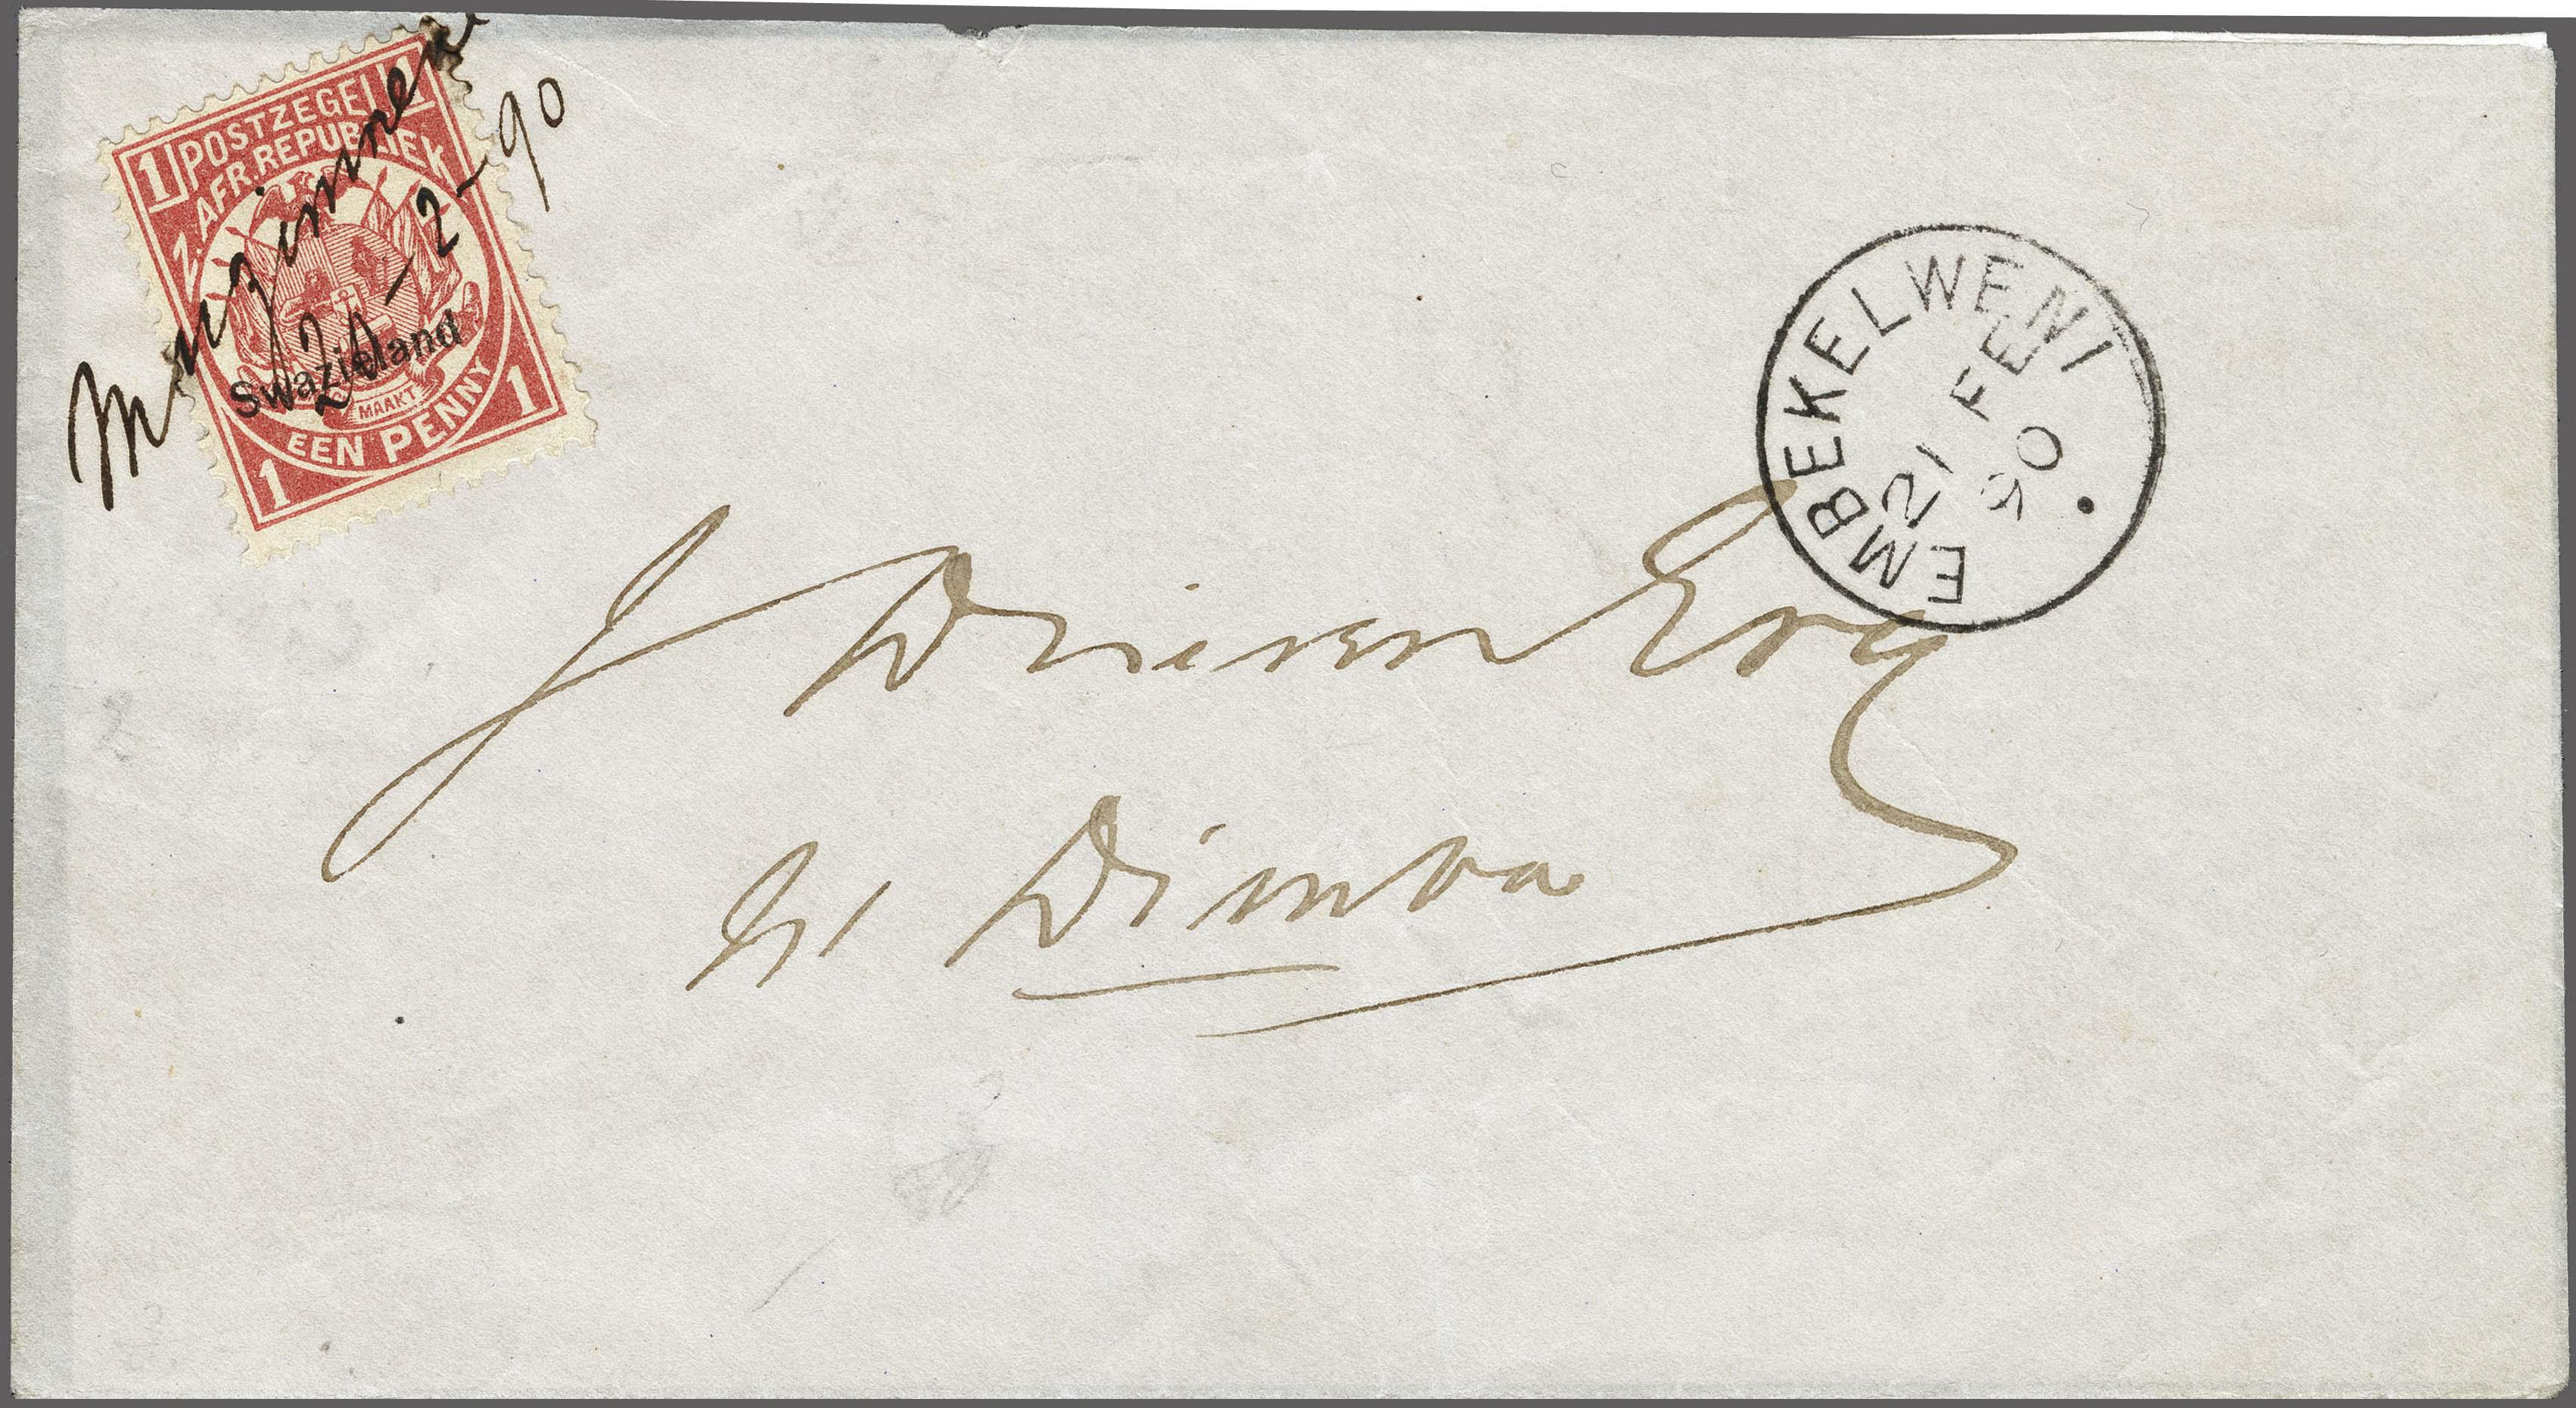 Lot 148 - Great Britain and former colonies swaziland -  Corinphila Veilingen Auction 250-253 - Day 1 - Foreign countries